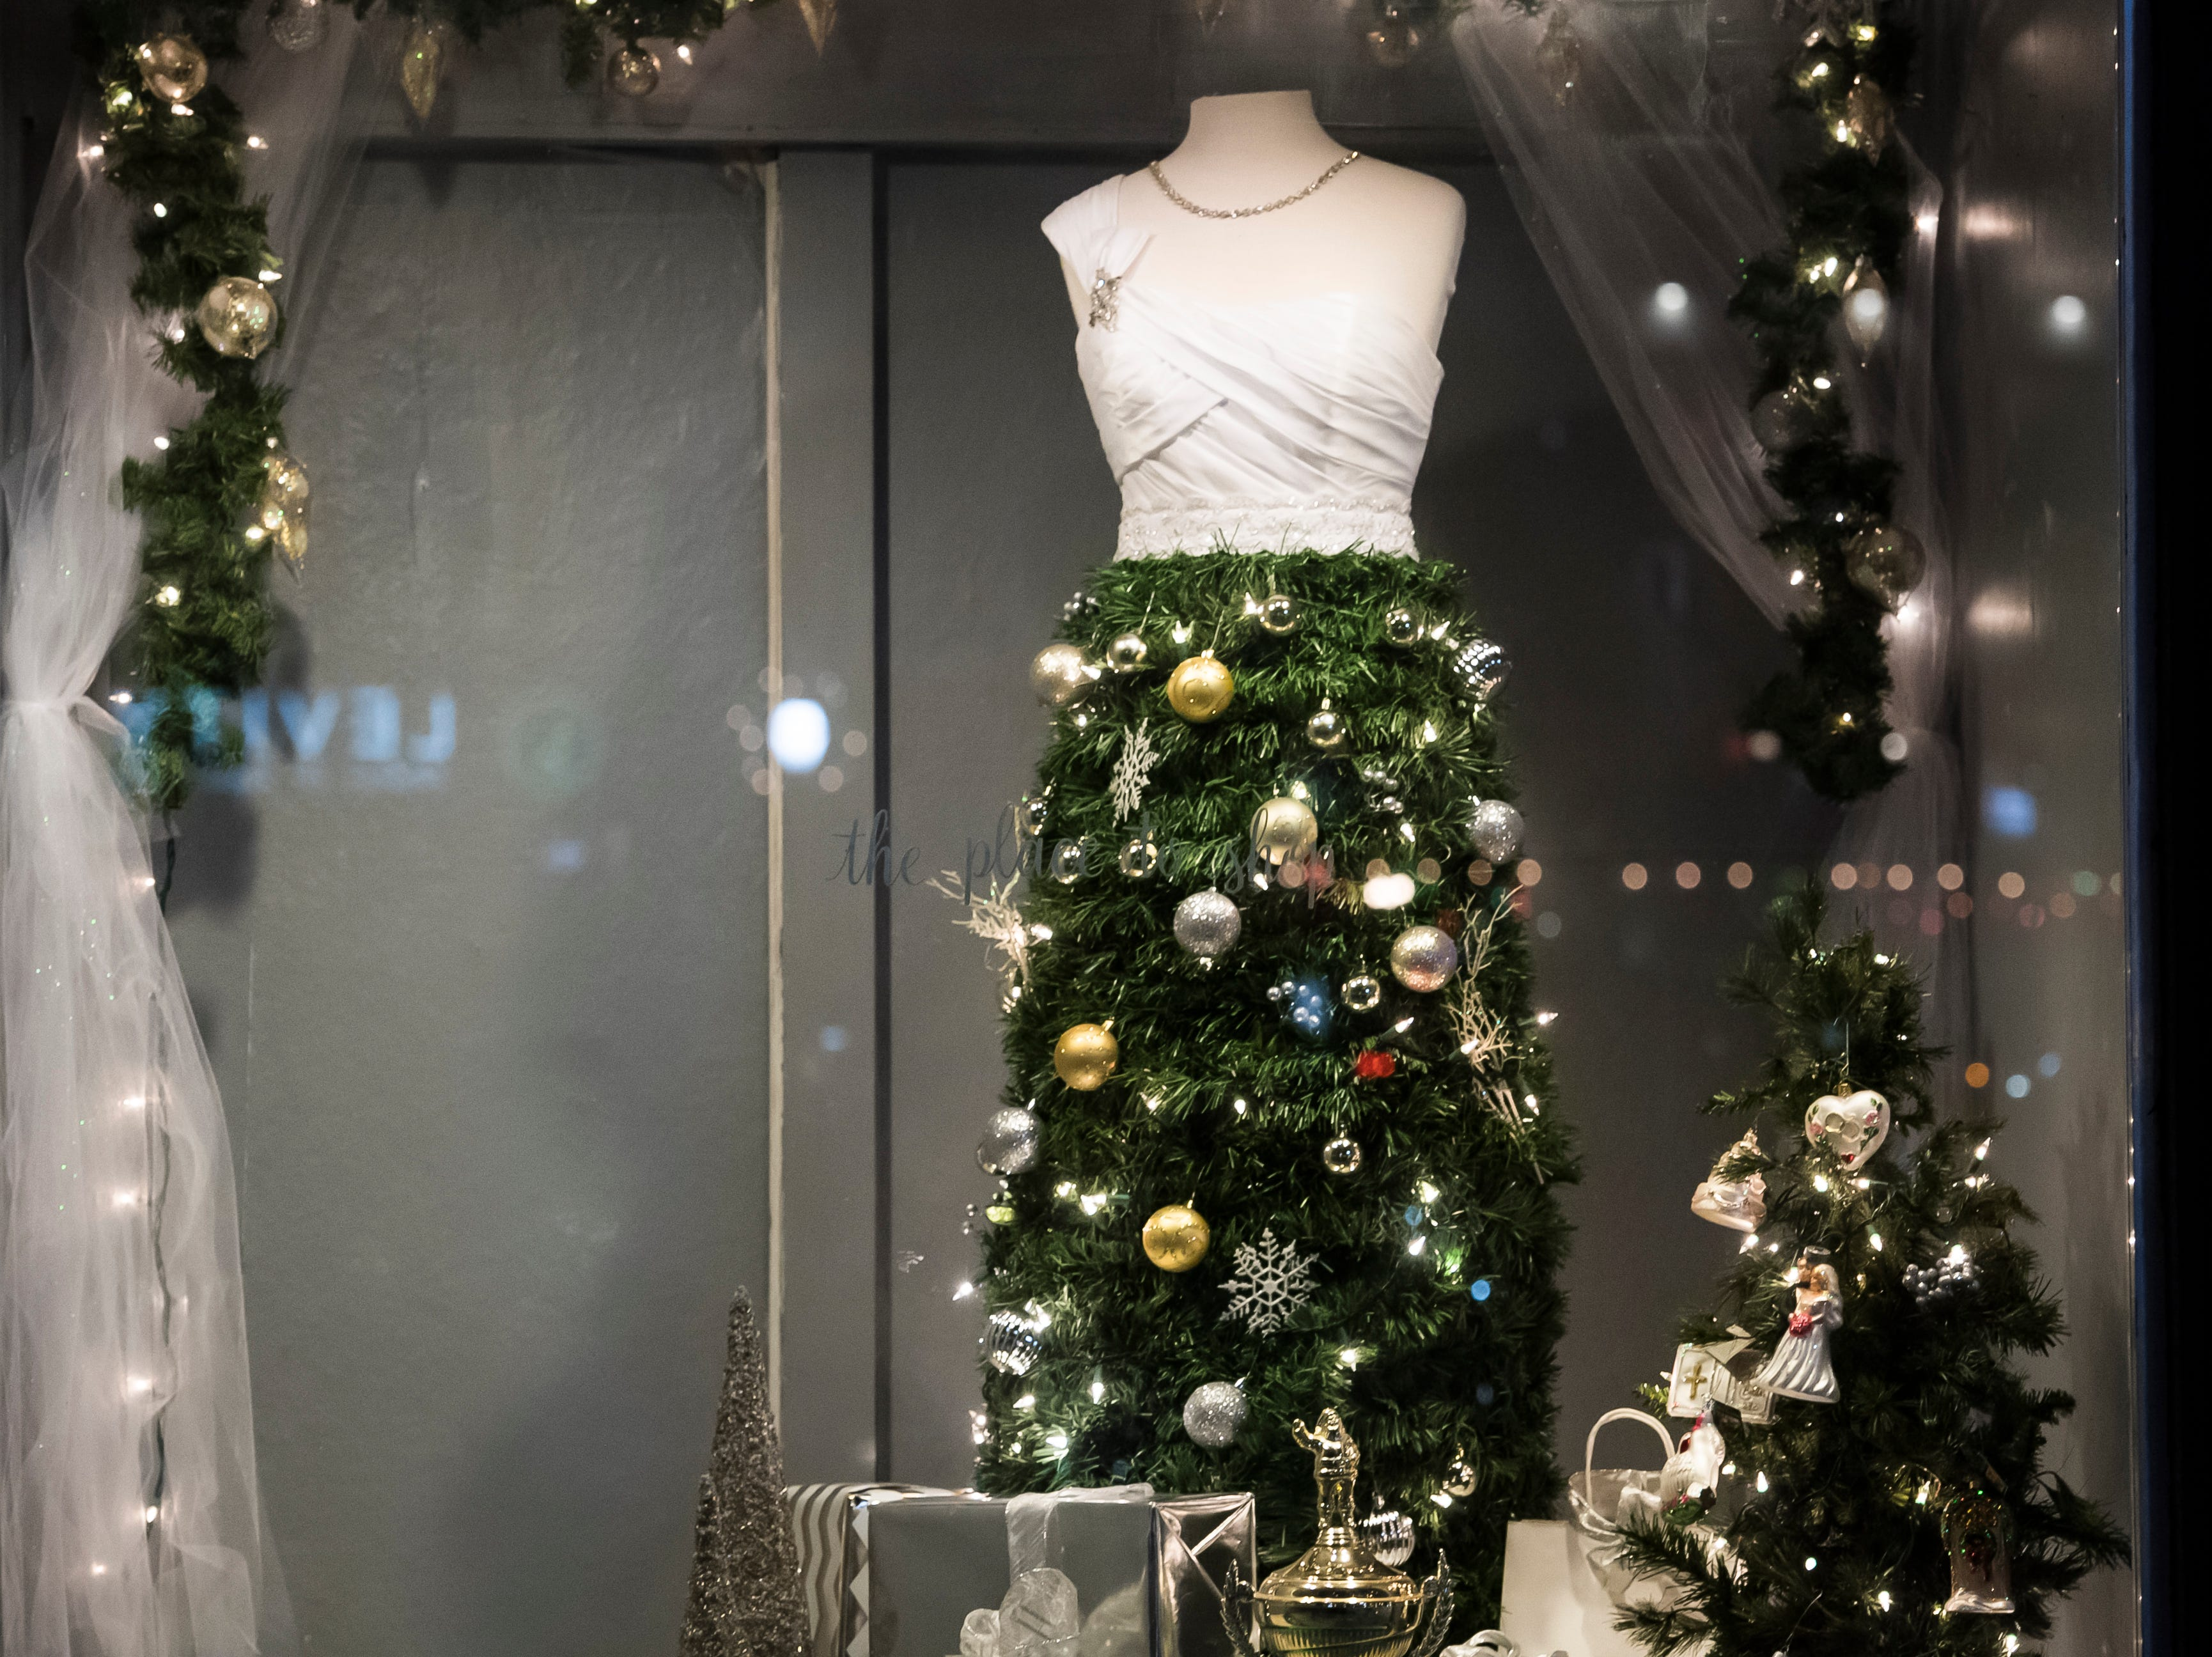 CoCo's Bridal located at 13 Center Square. Visit mainstreethanover.org for details about Christmas Tree Wars.